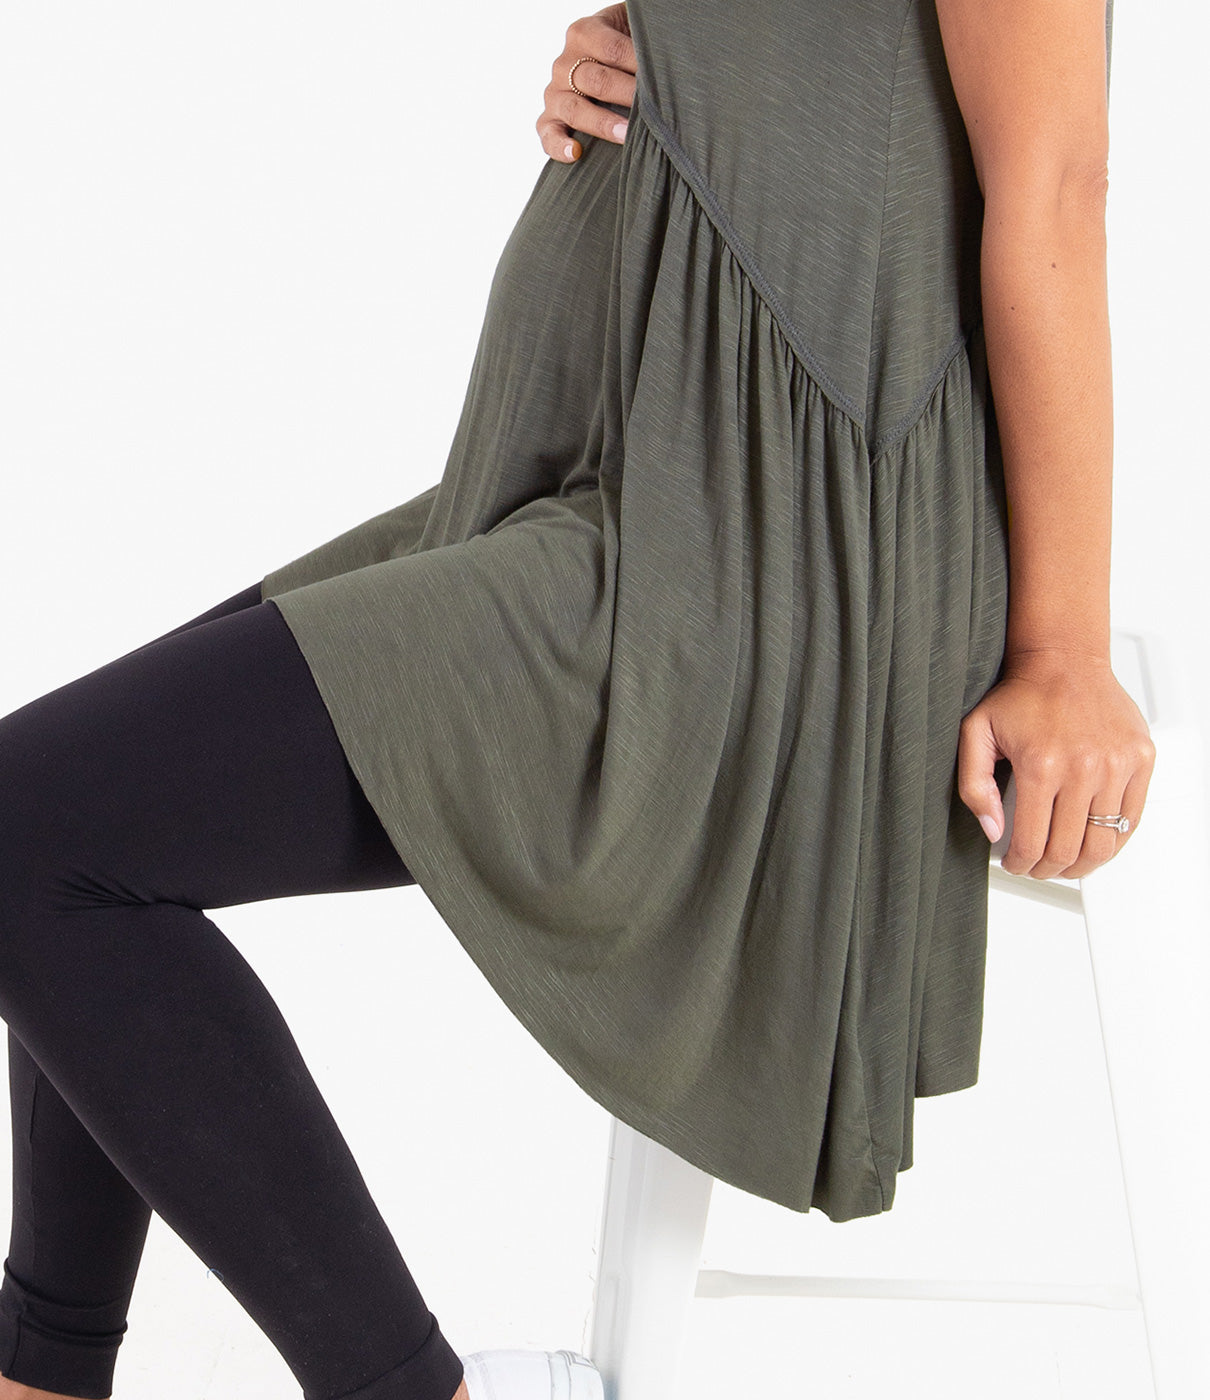 Fashion + FunctionA drapey, handkerchief hem is a fun play on a basic tee, and creates a drape that can be worn with any form fitting bottom.